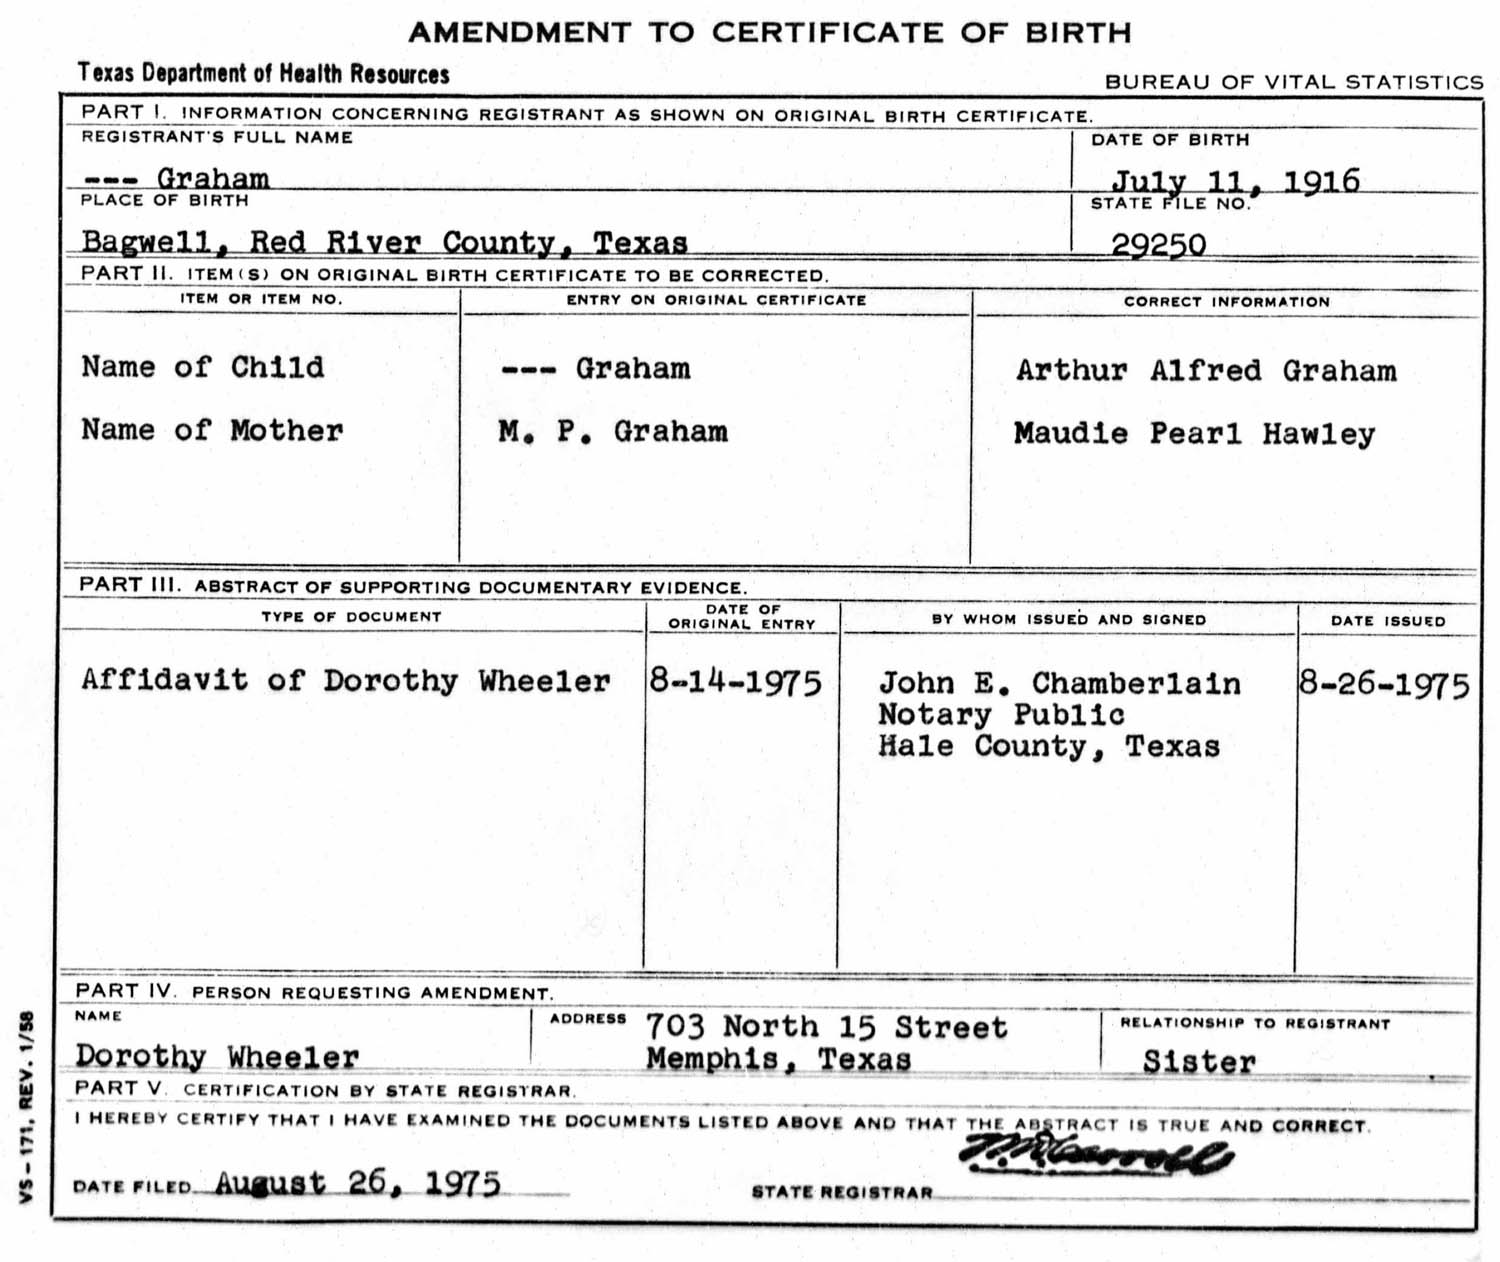 Rdfulks genealogy for arthur alfred graham view this document full documents or 1betcityfo Choice Image